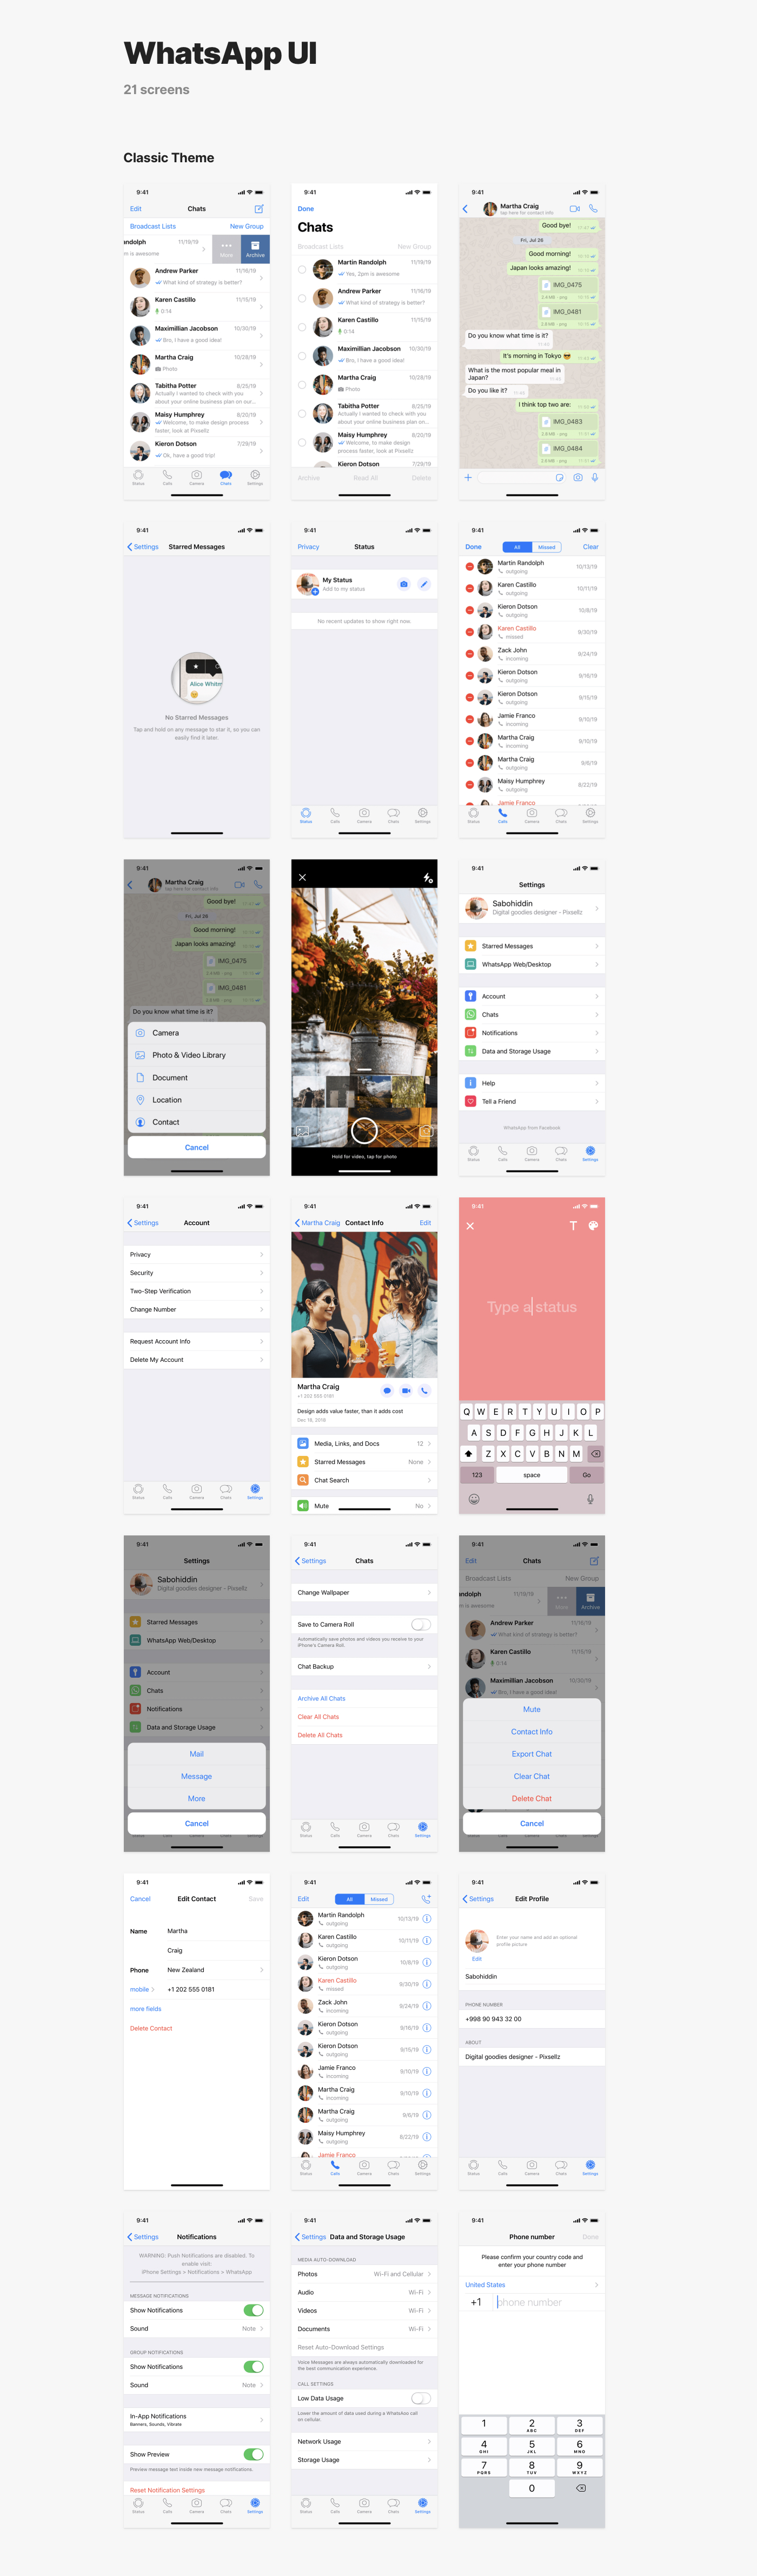 Mobile Apps Library for Sketch & Figma - 120+ reconstructed screens of popular mobile apps: Instagram, Telegram, Messenger, WhatsApp. Compatible with Sketch App & Figma.